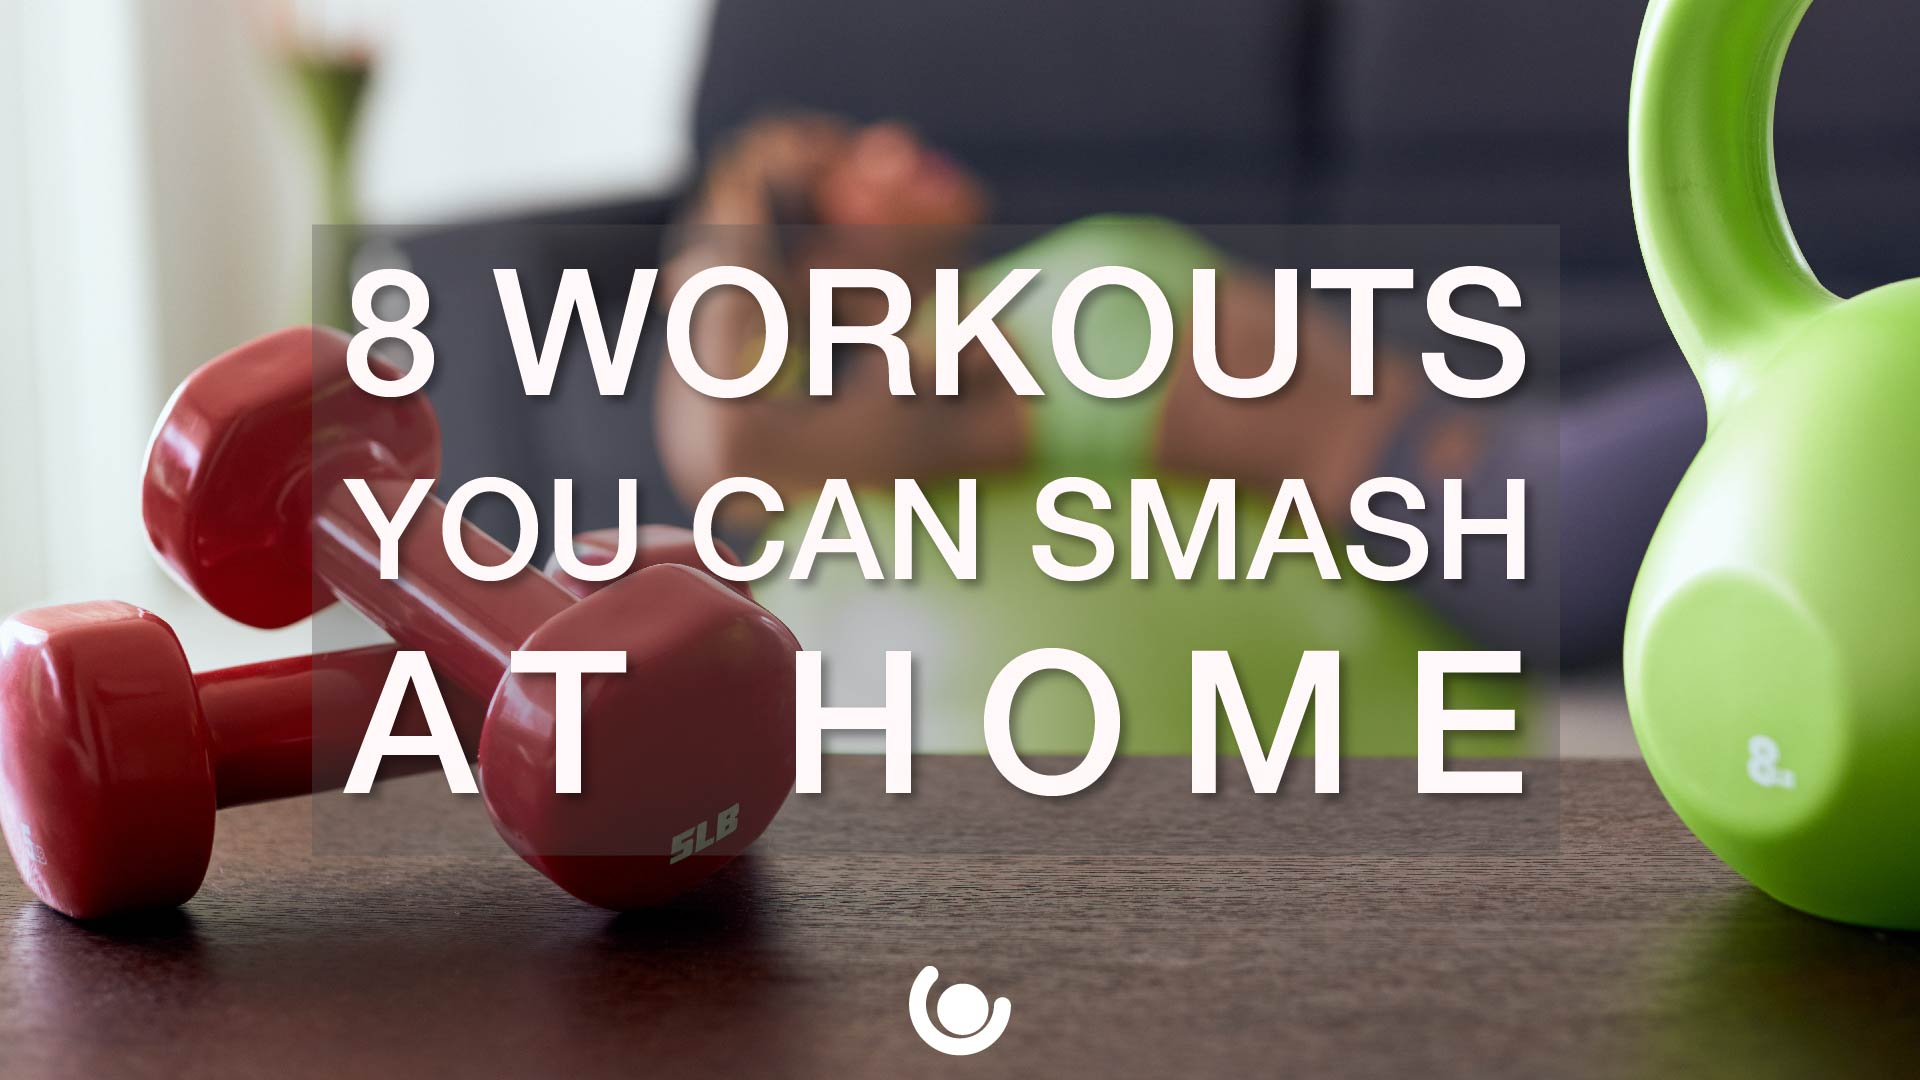 8-Workouts-You-Can-Smash-at-Home-01.jpg